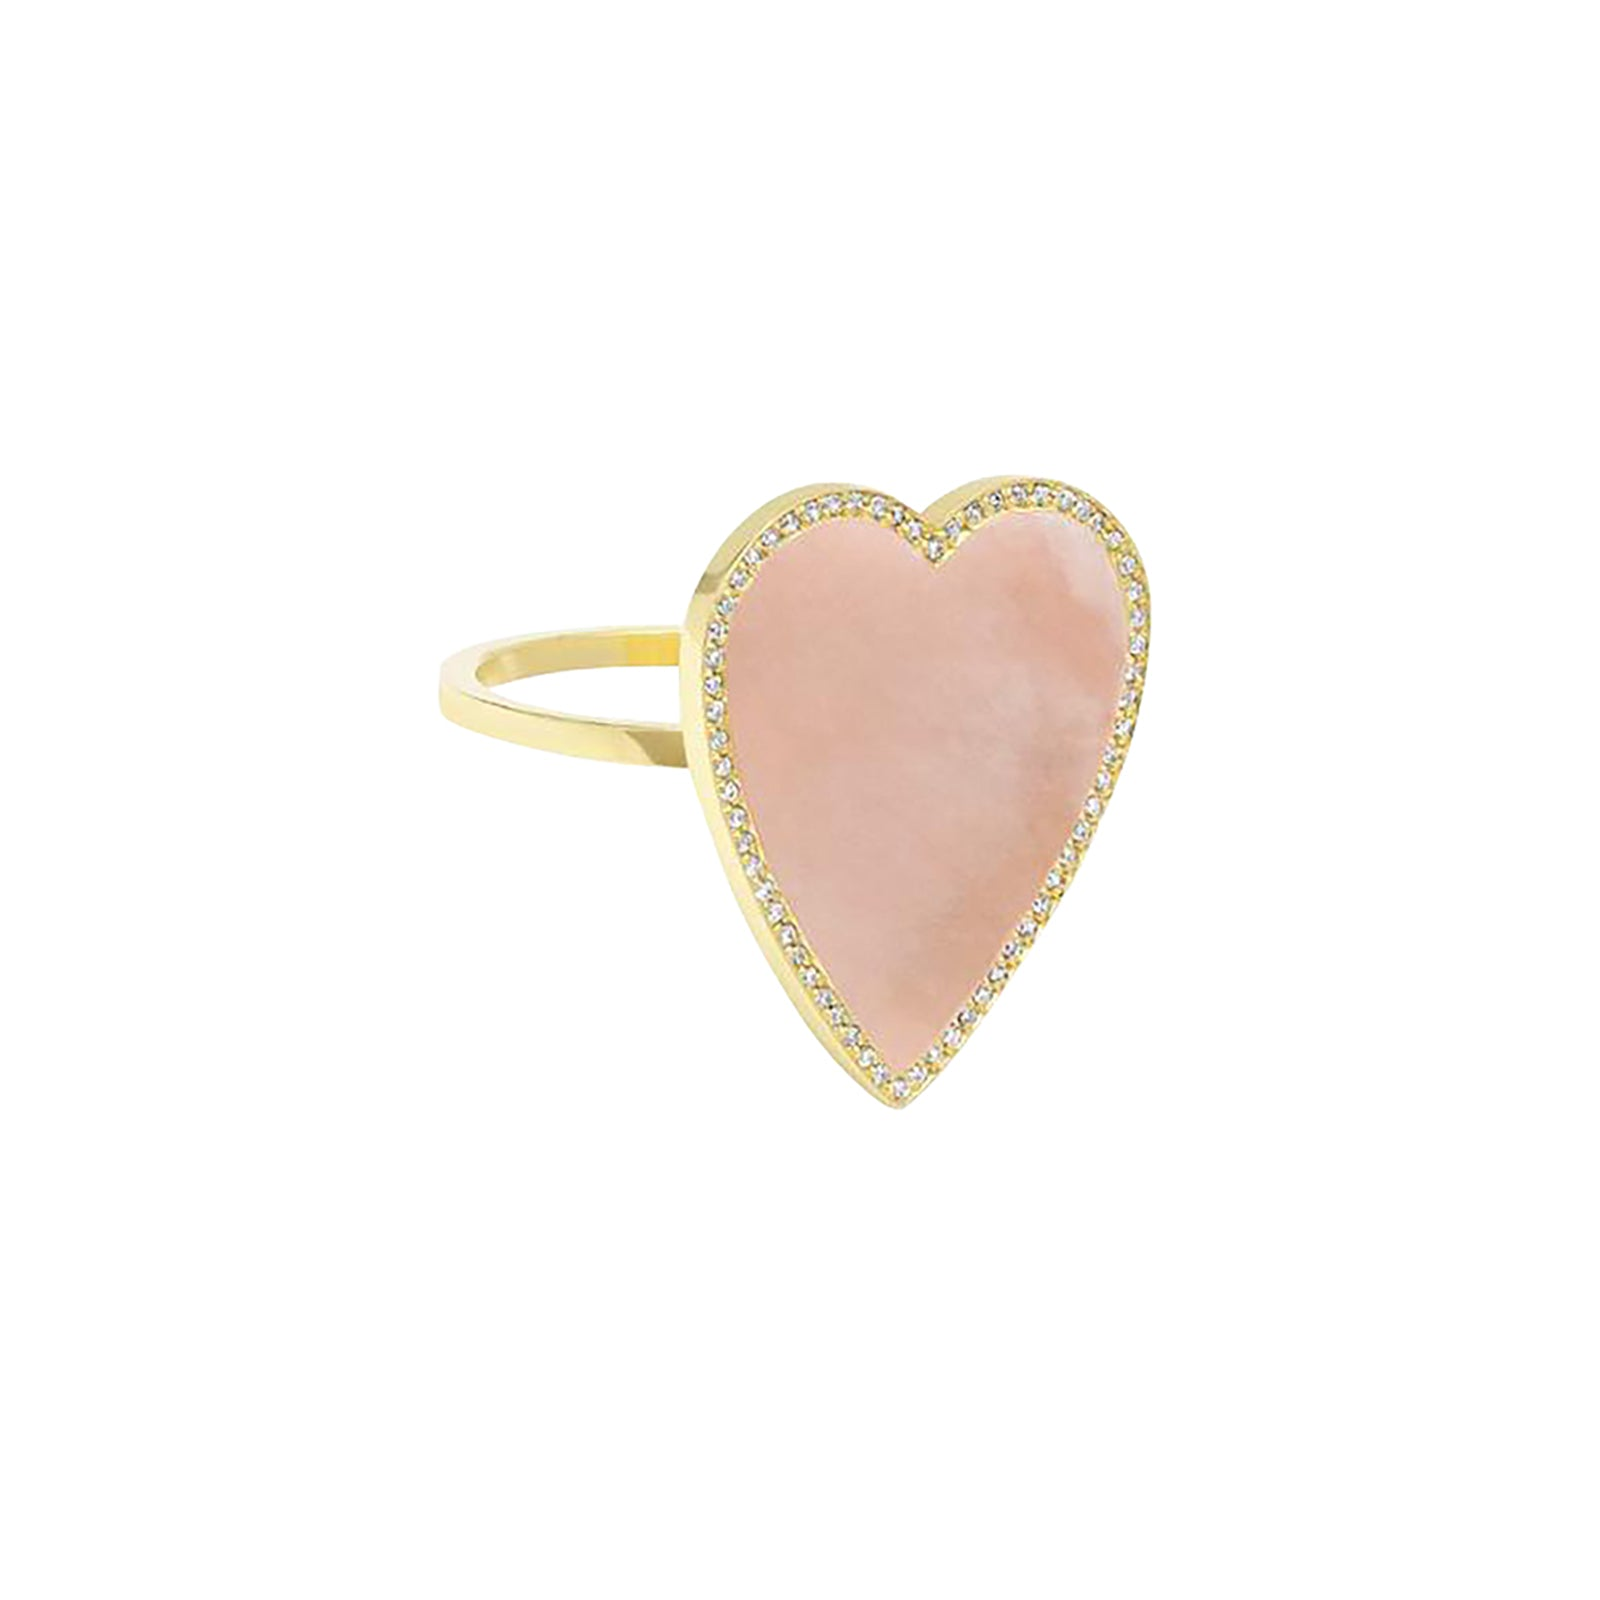 Jennifer Meyer Heart Ring - Pink Opal - Rings - Broken English Jewelry